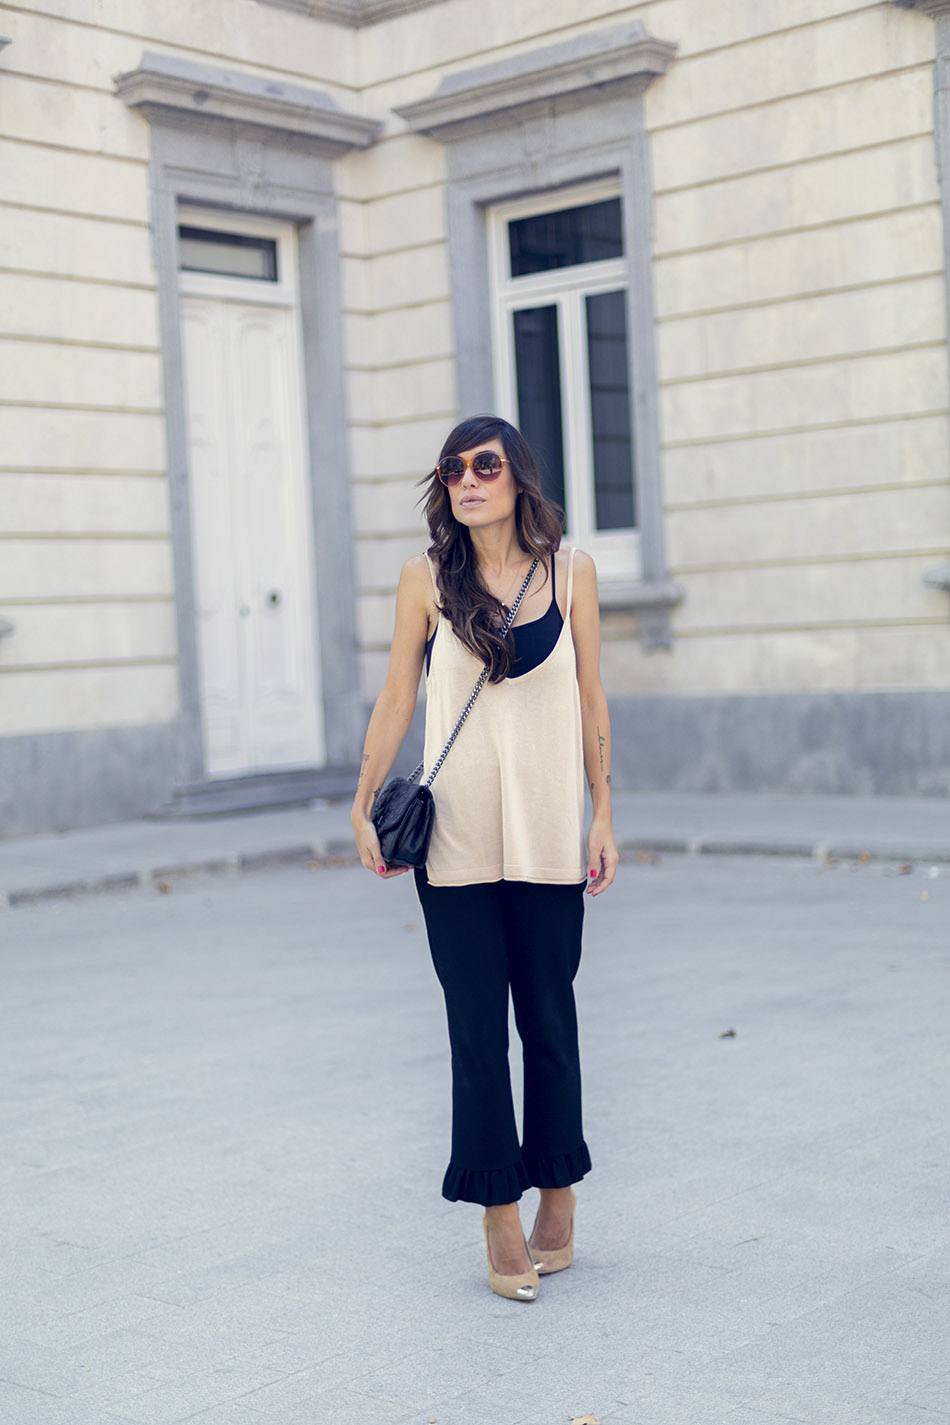 street-style-october-2016-outfits-review-barbara-crespo-08